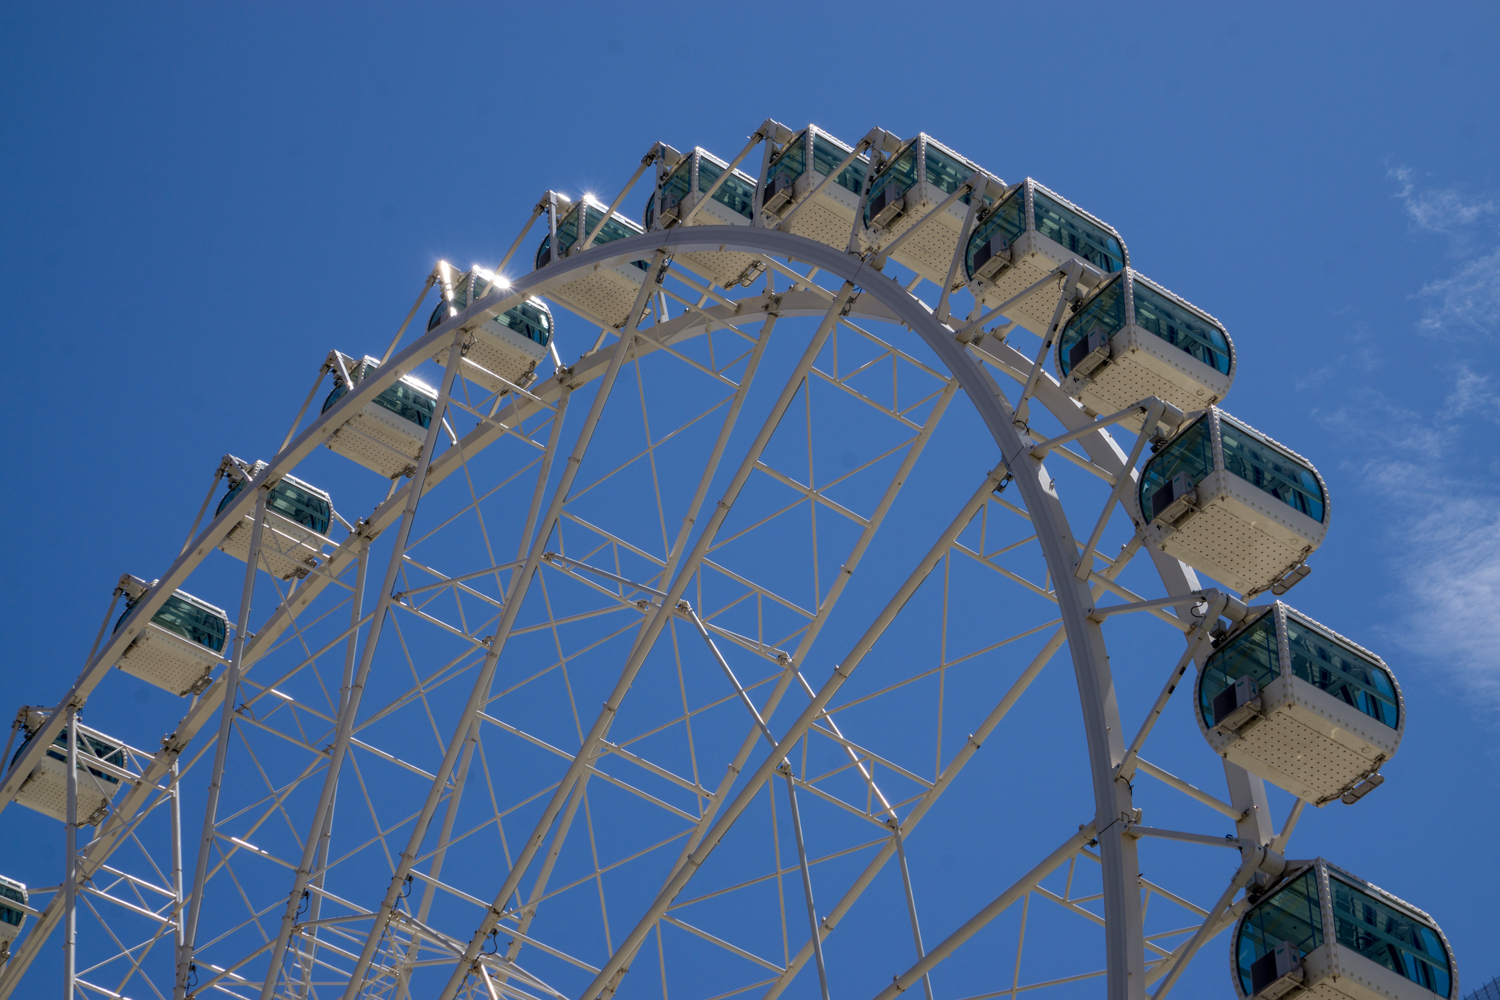 Málaga's new ferris wheel is the biggest in Europe.